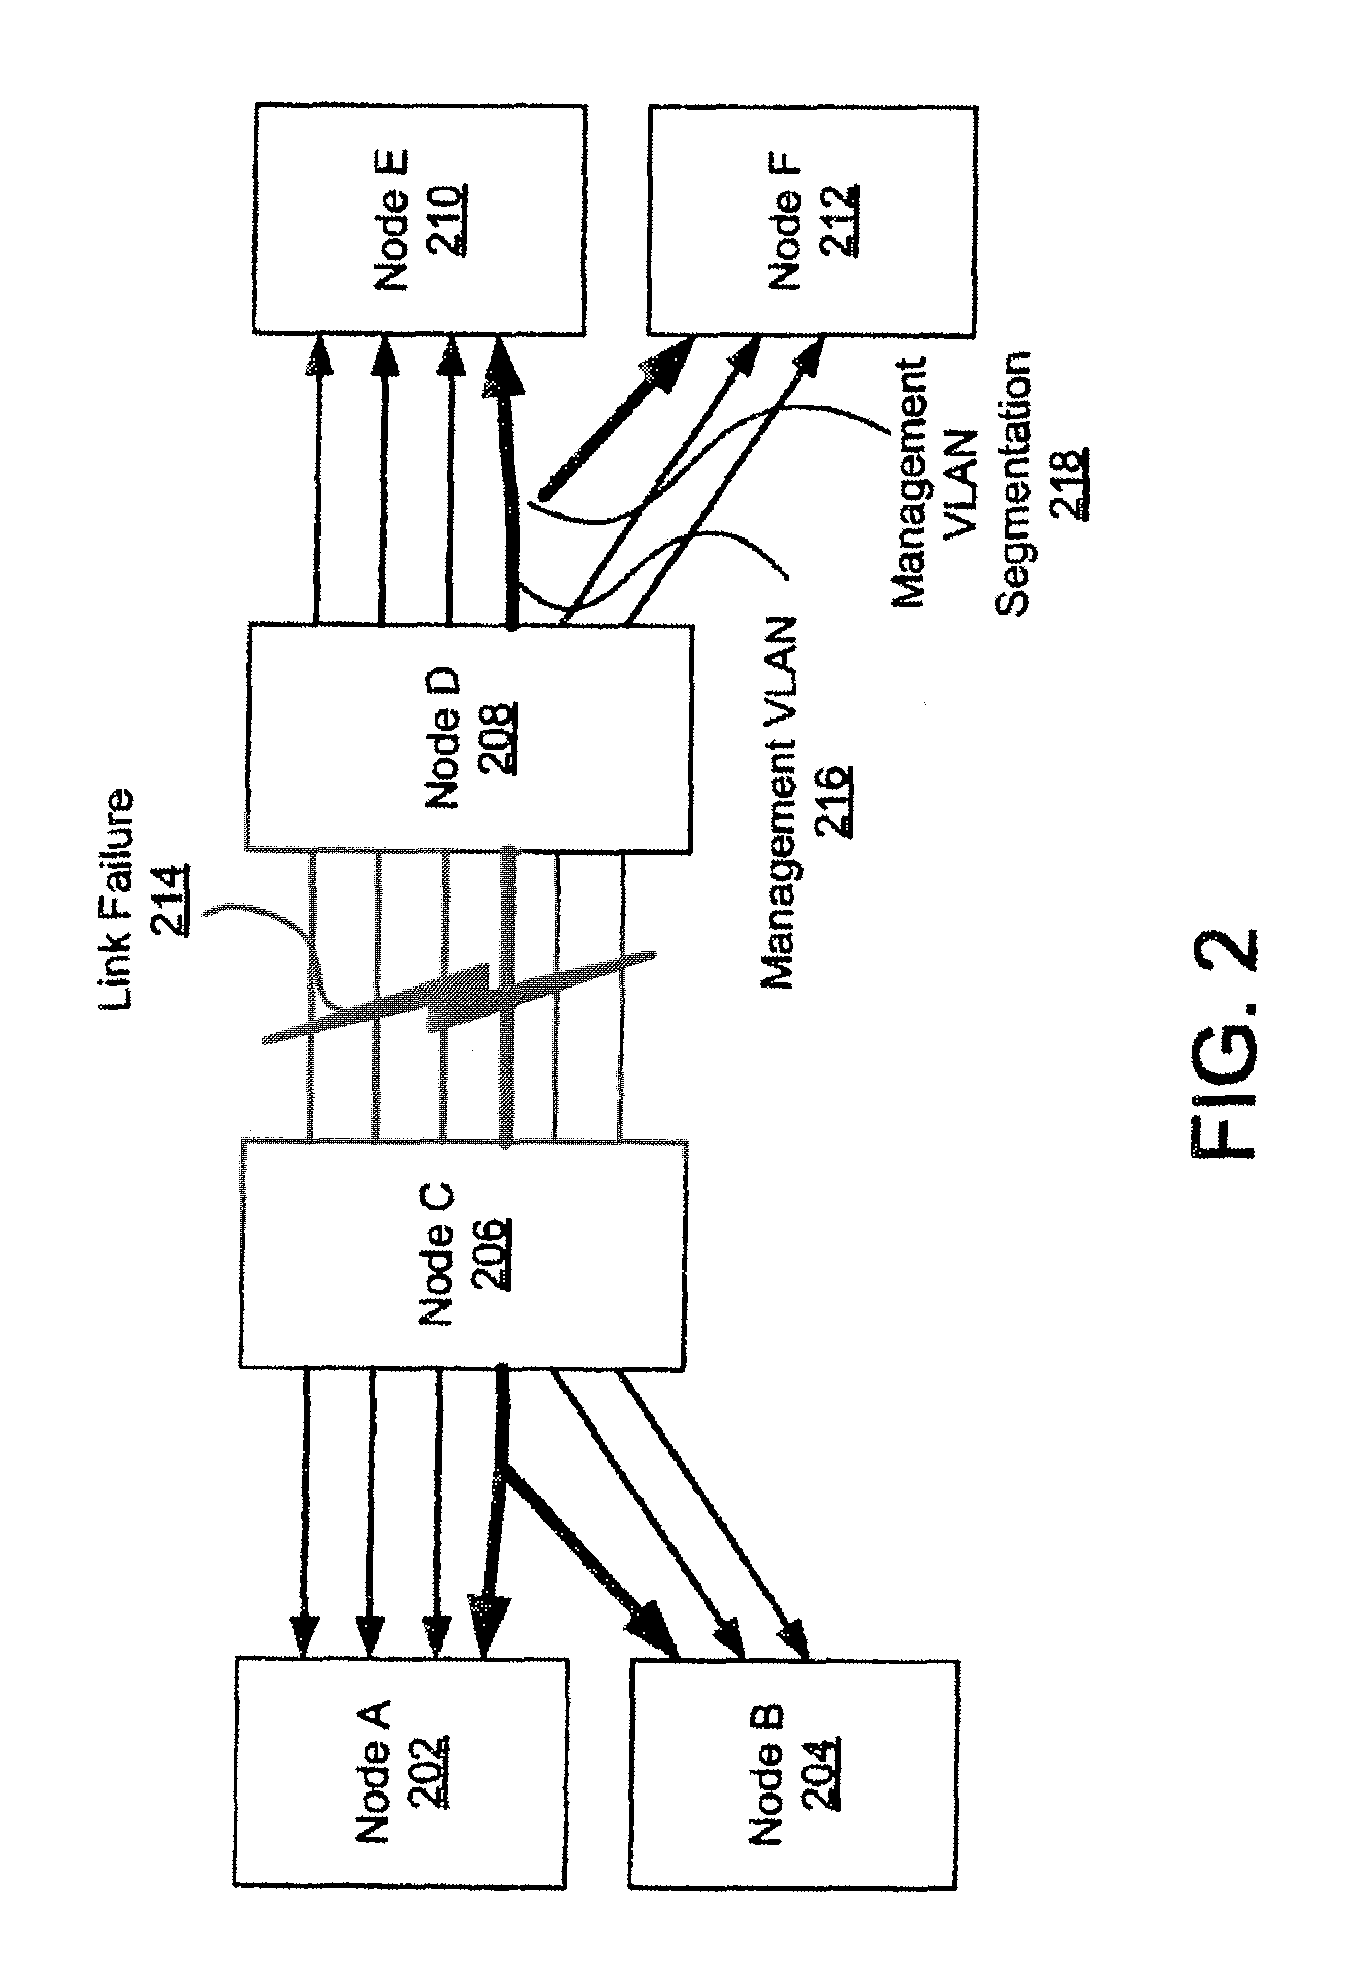 patent ep2528275a1 - system and method to provide aggregated alarm indication signals